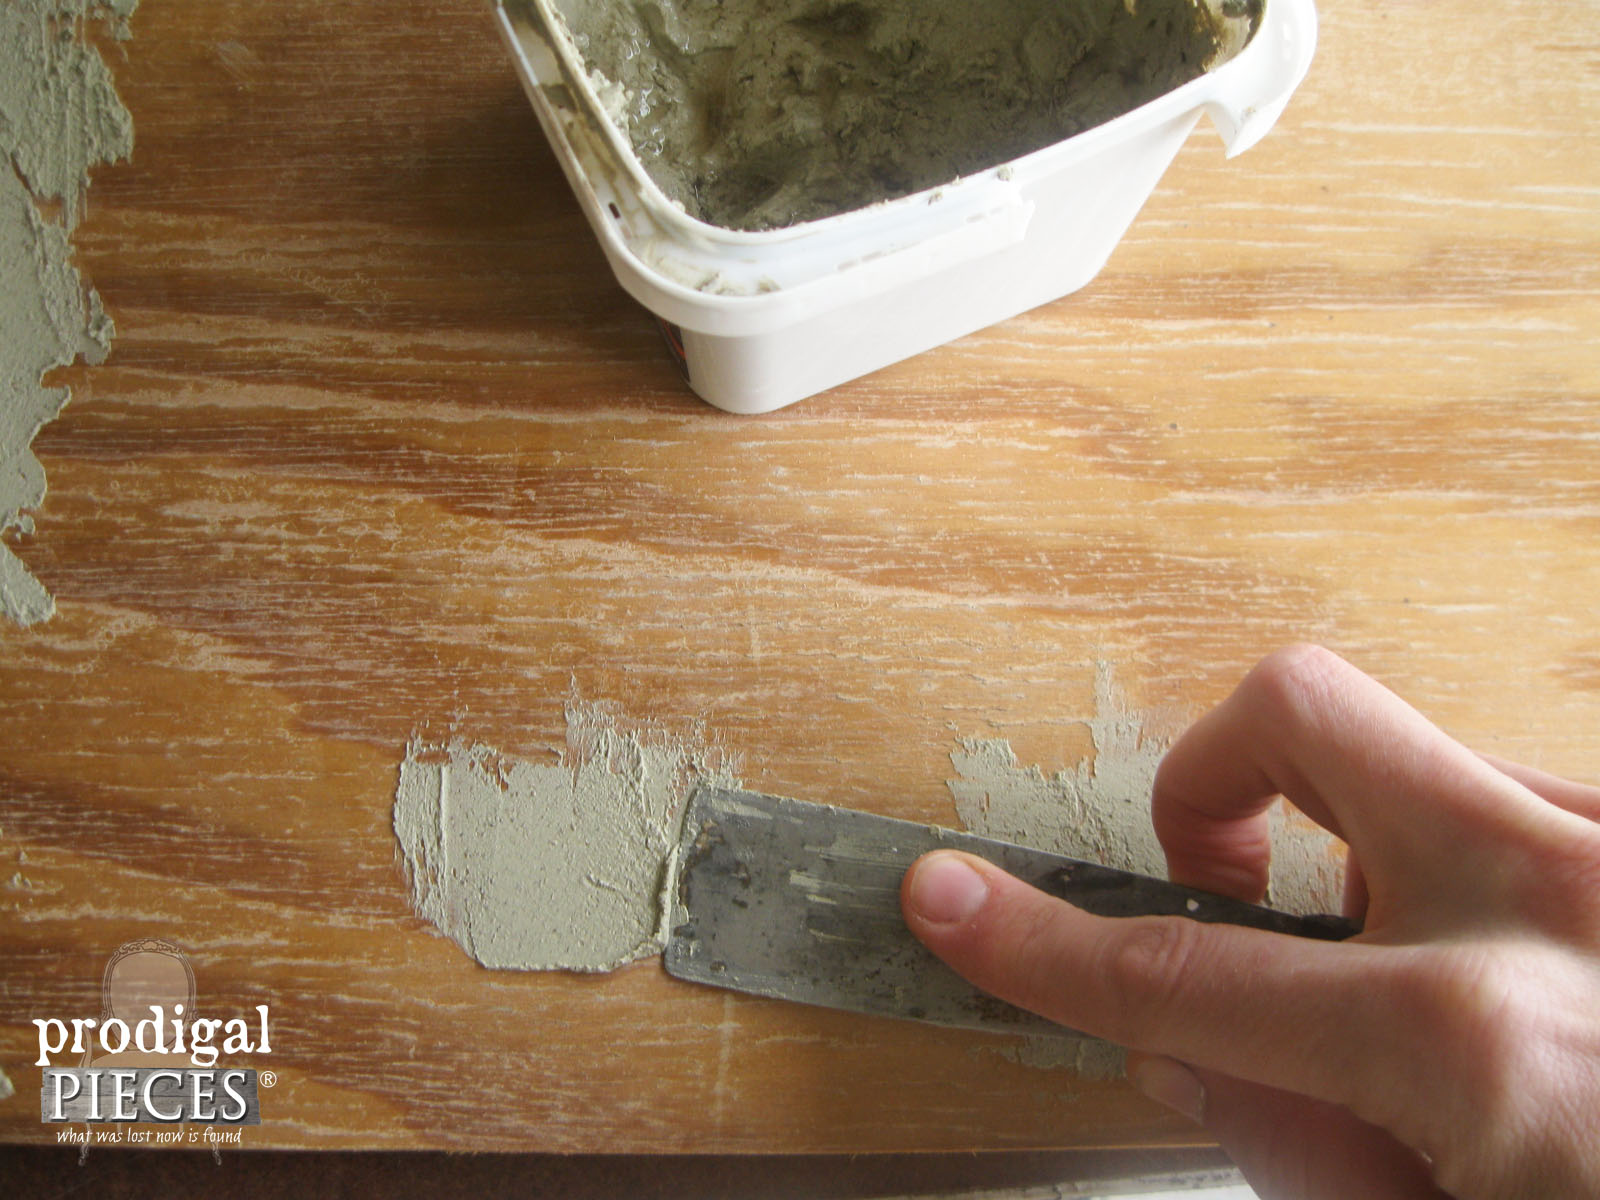 Elmer's Wood Filler to Repair Chalkboard Damage | Prodigal Pieces | www.prodigalpieces.com